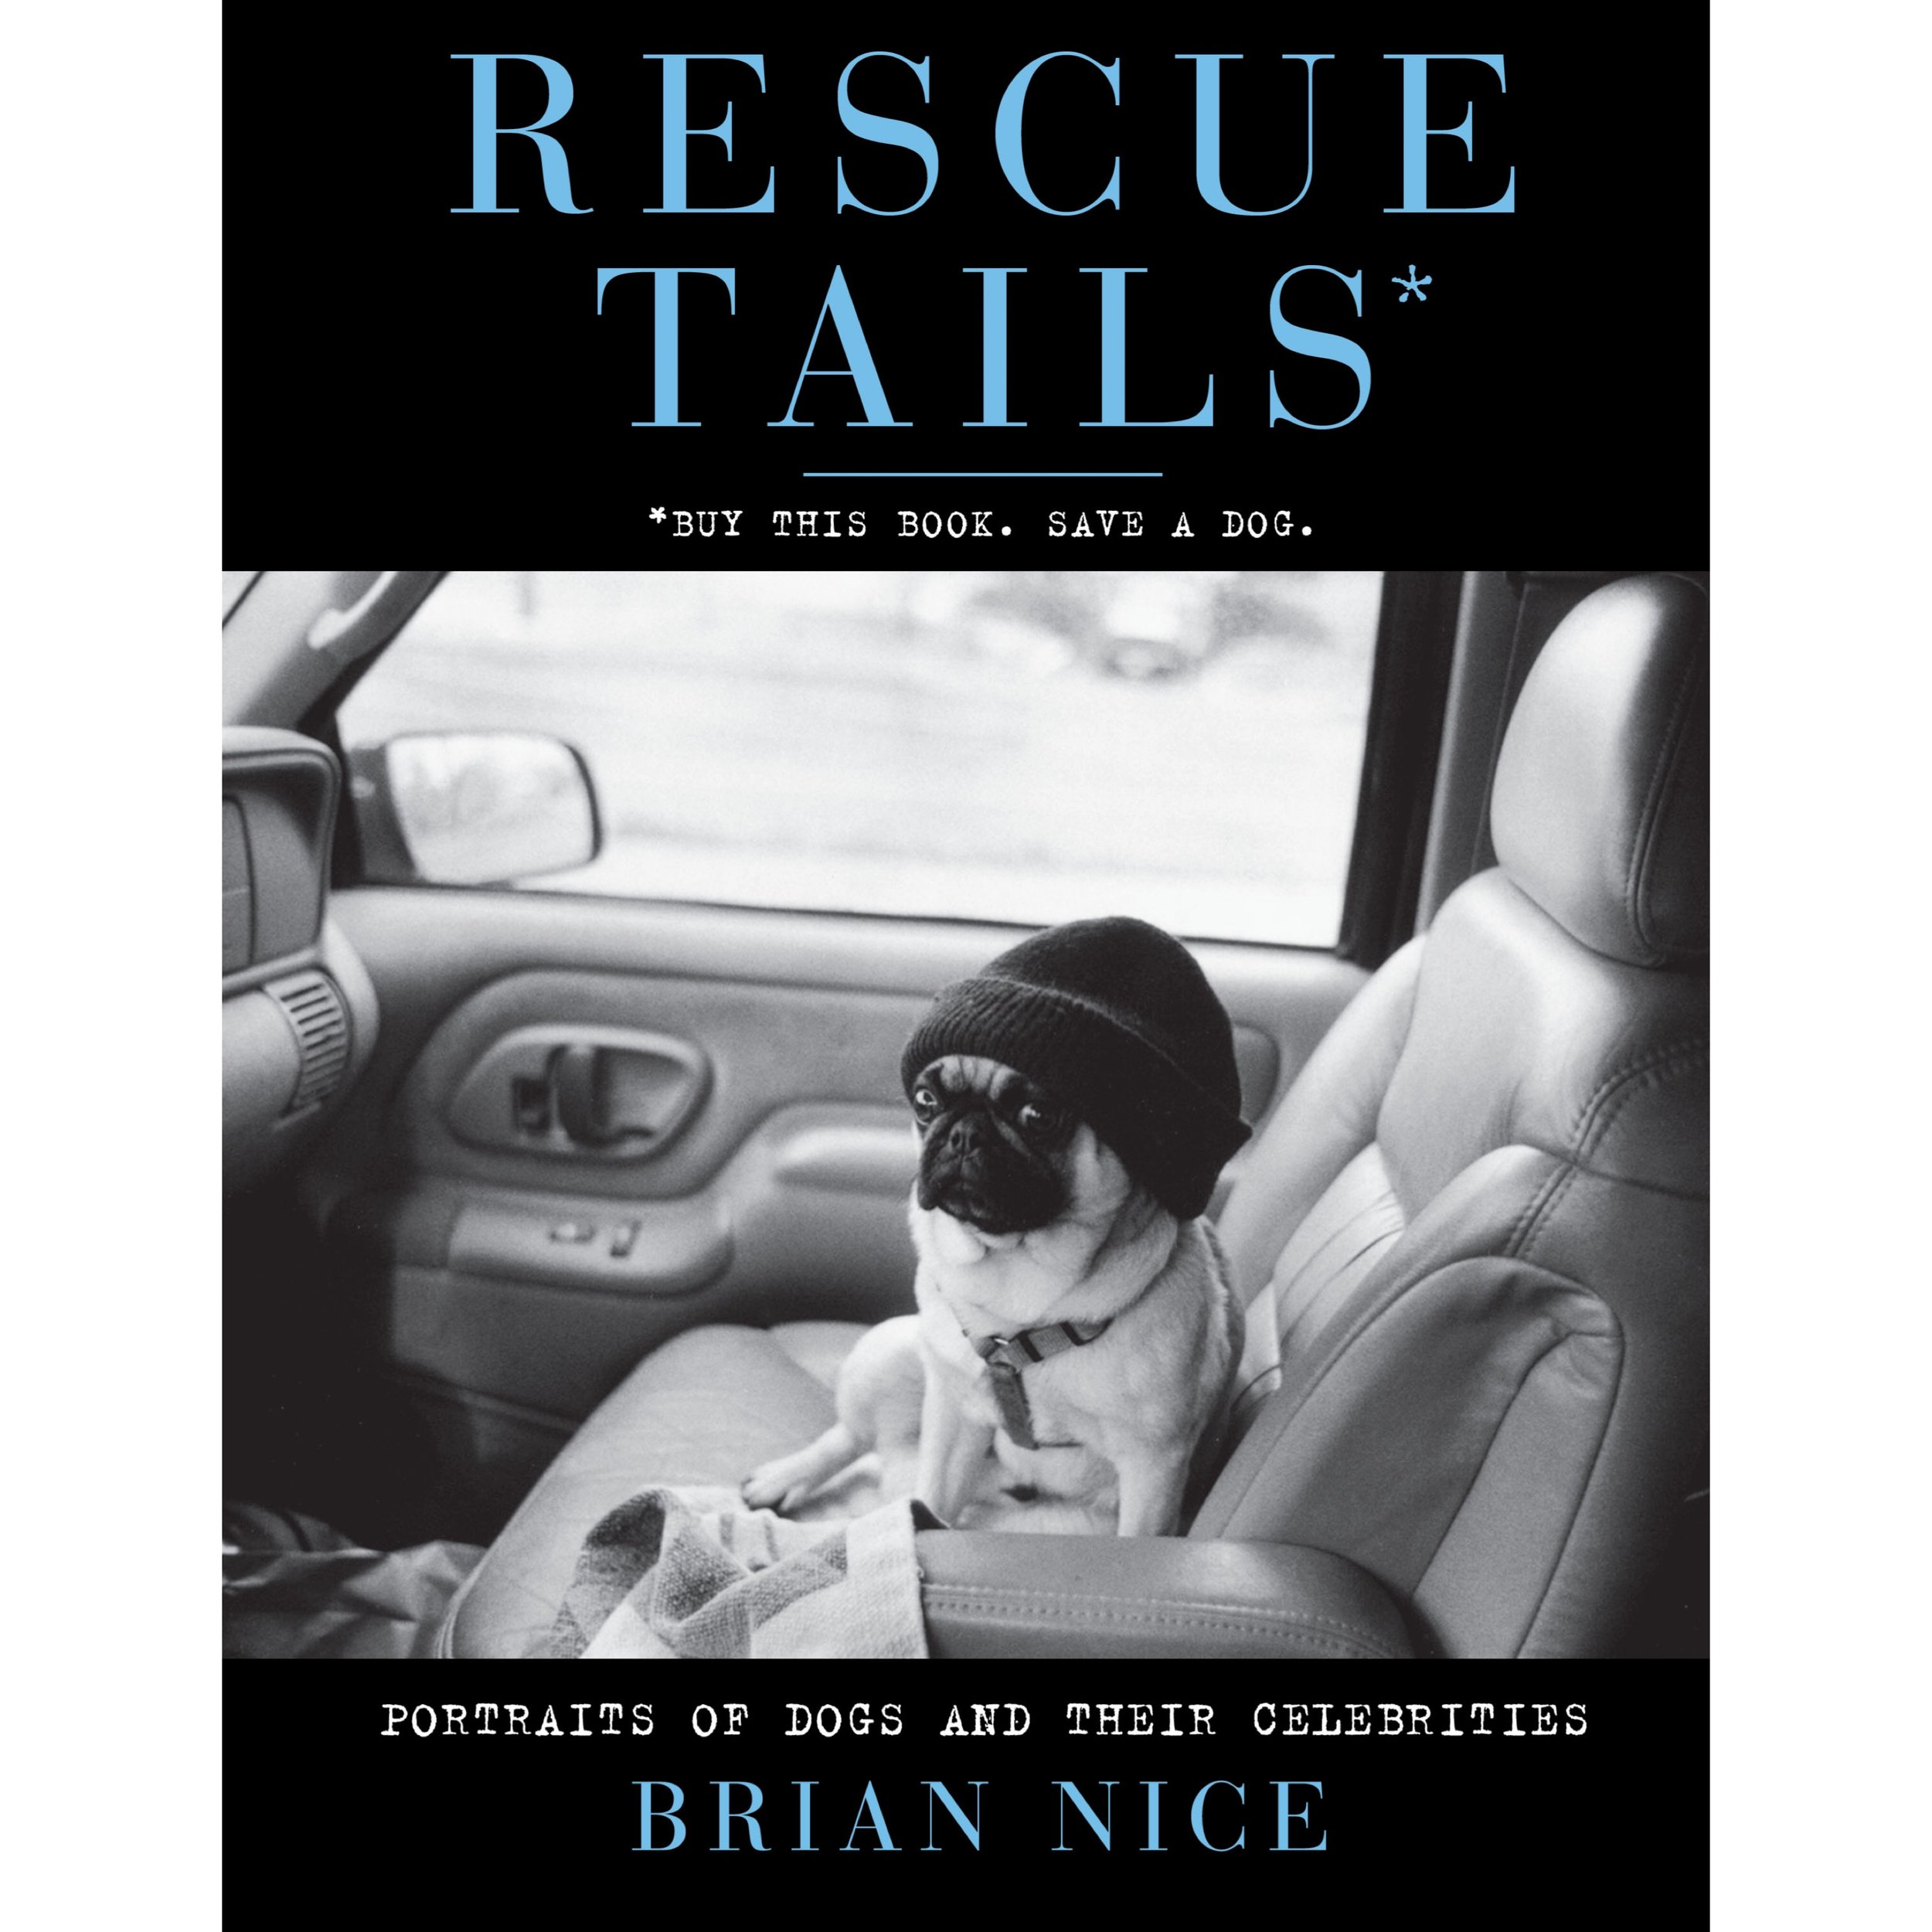 RESCUE TAILS - Portraits of dogs and their celebrities. Proceeds will go to benefit the Humane Society of New York and Much Love Animal Rescue in Los Angeles, both no-kill animal shelters.